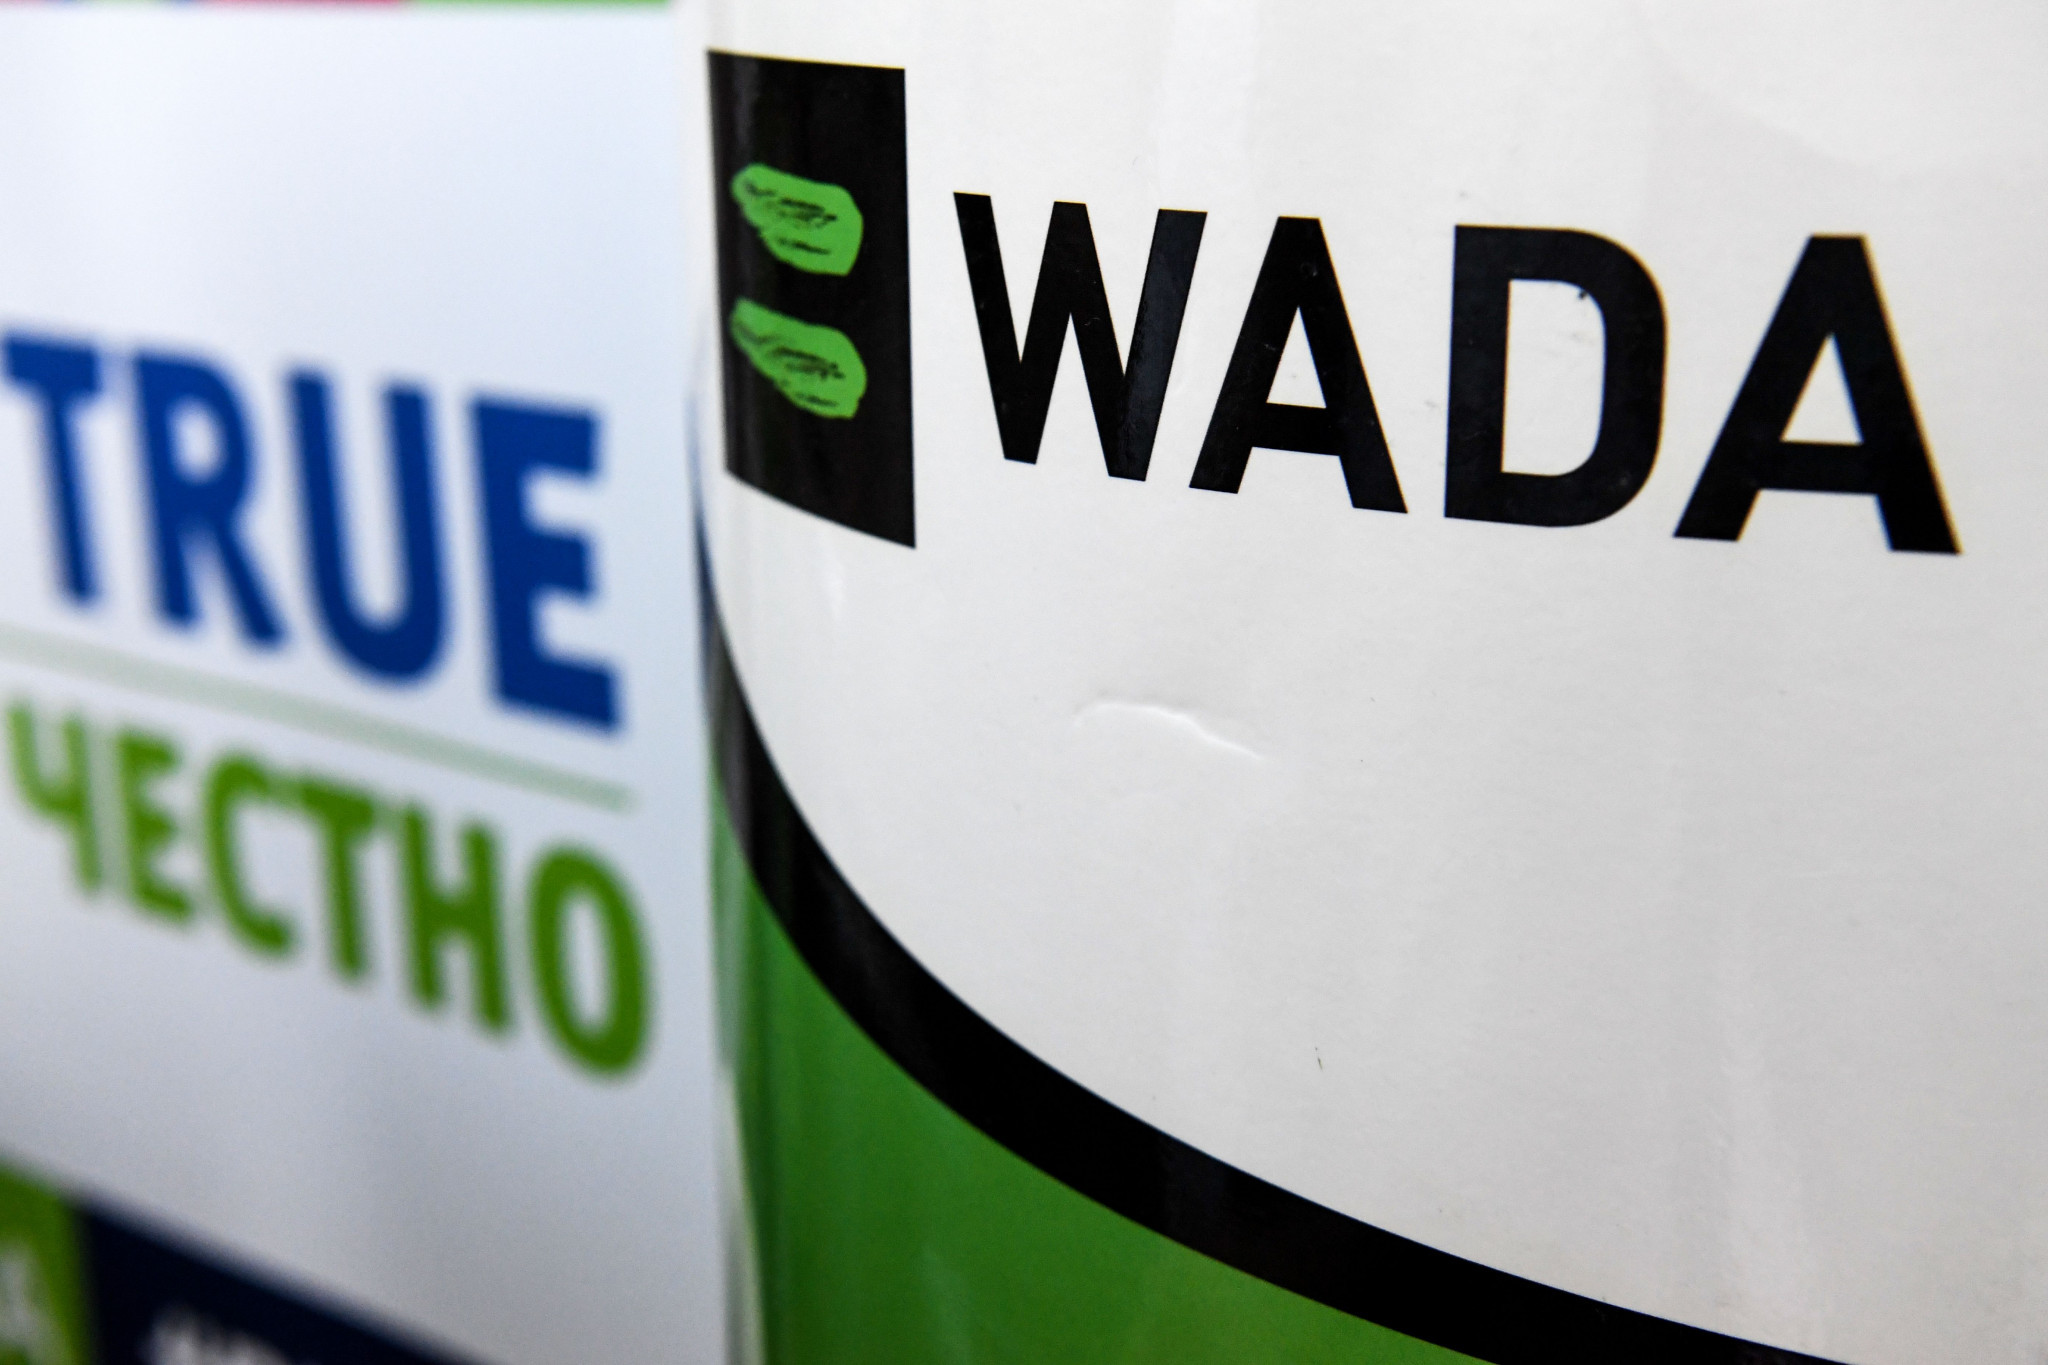 Improper conduct investigation cost WADA nearly $1.6 million